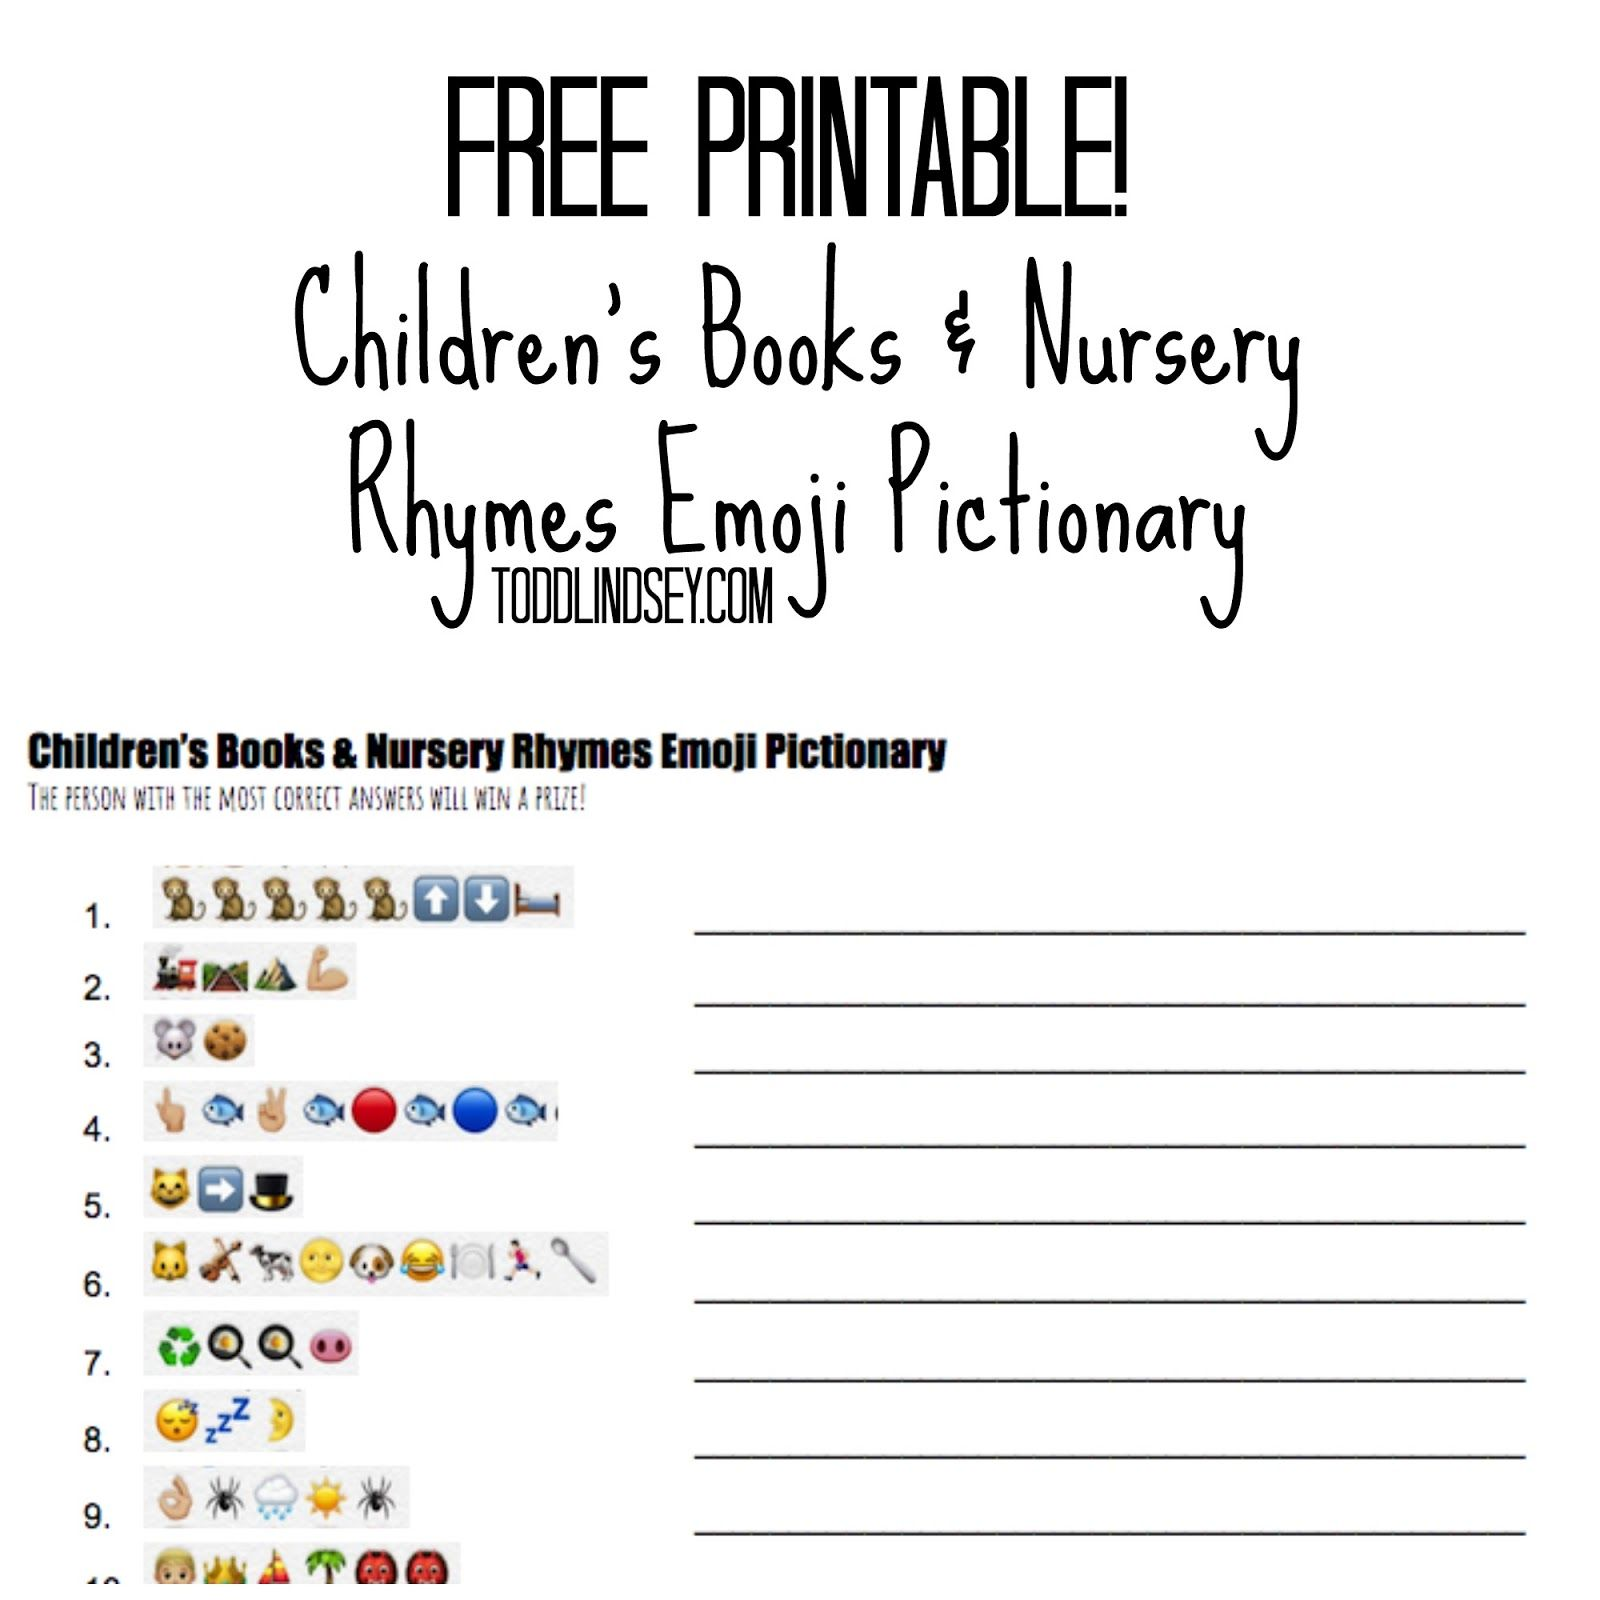 FREE Printable Children s Books & Nursery Rhymes Emoji Pictionary